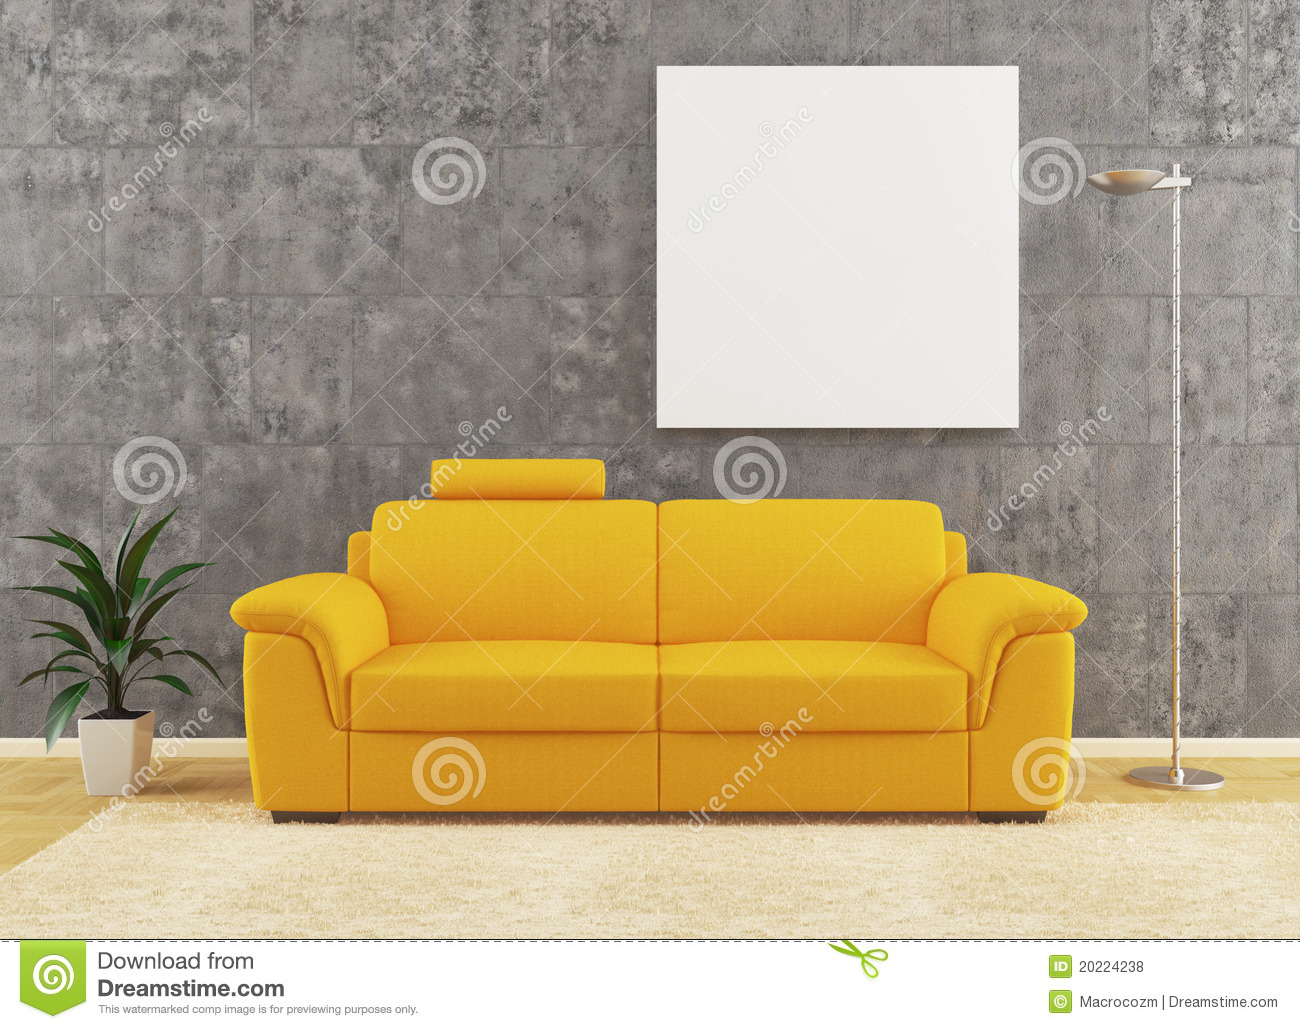 Modern Yellow Sofa On Dirty Wall Interior Design Stock Illustration Illustration Of Home